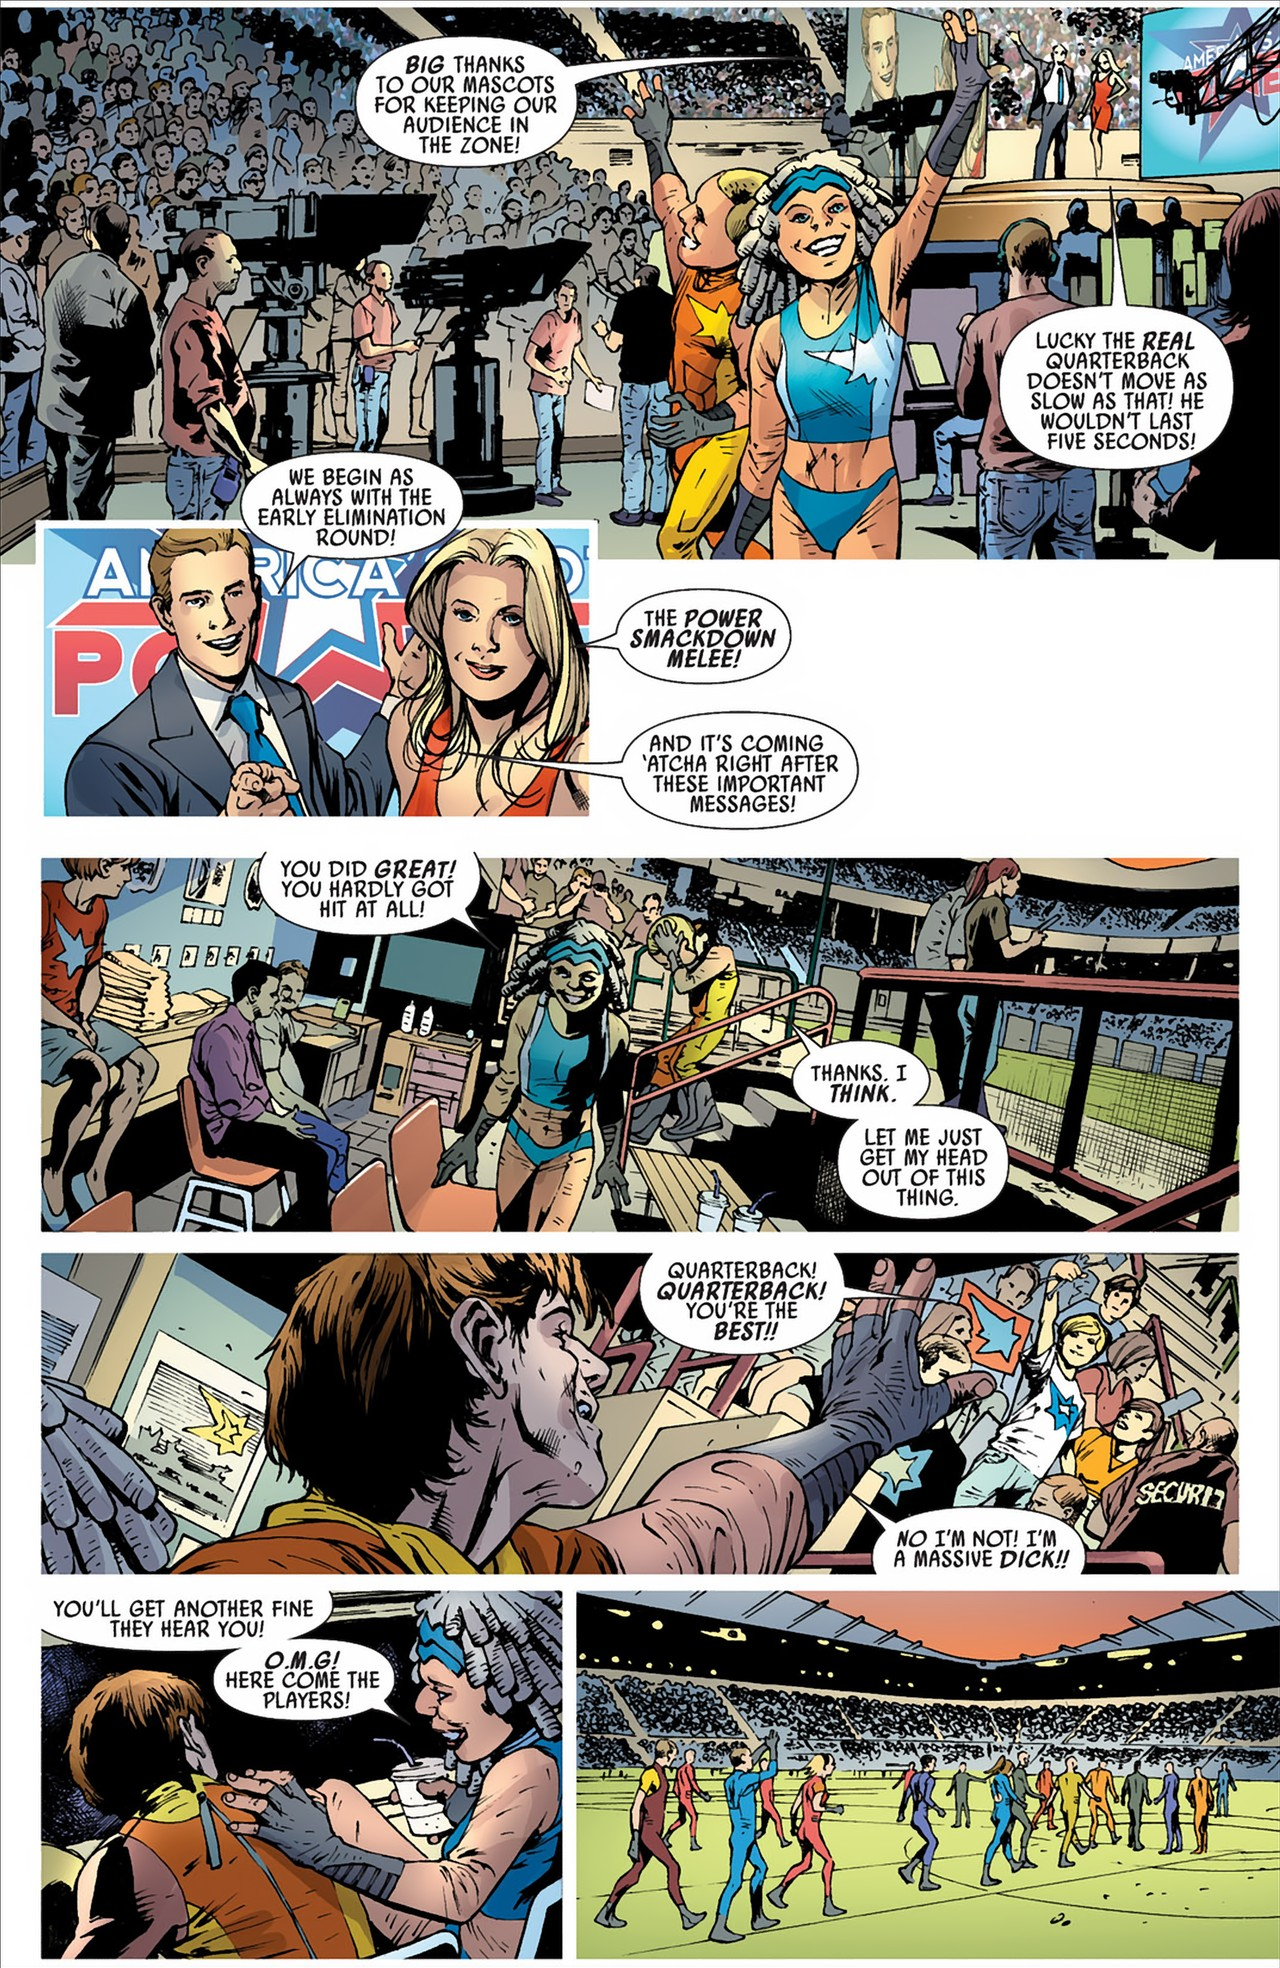 Read online America's Got Powers comic -  Issue #2 - 22